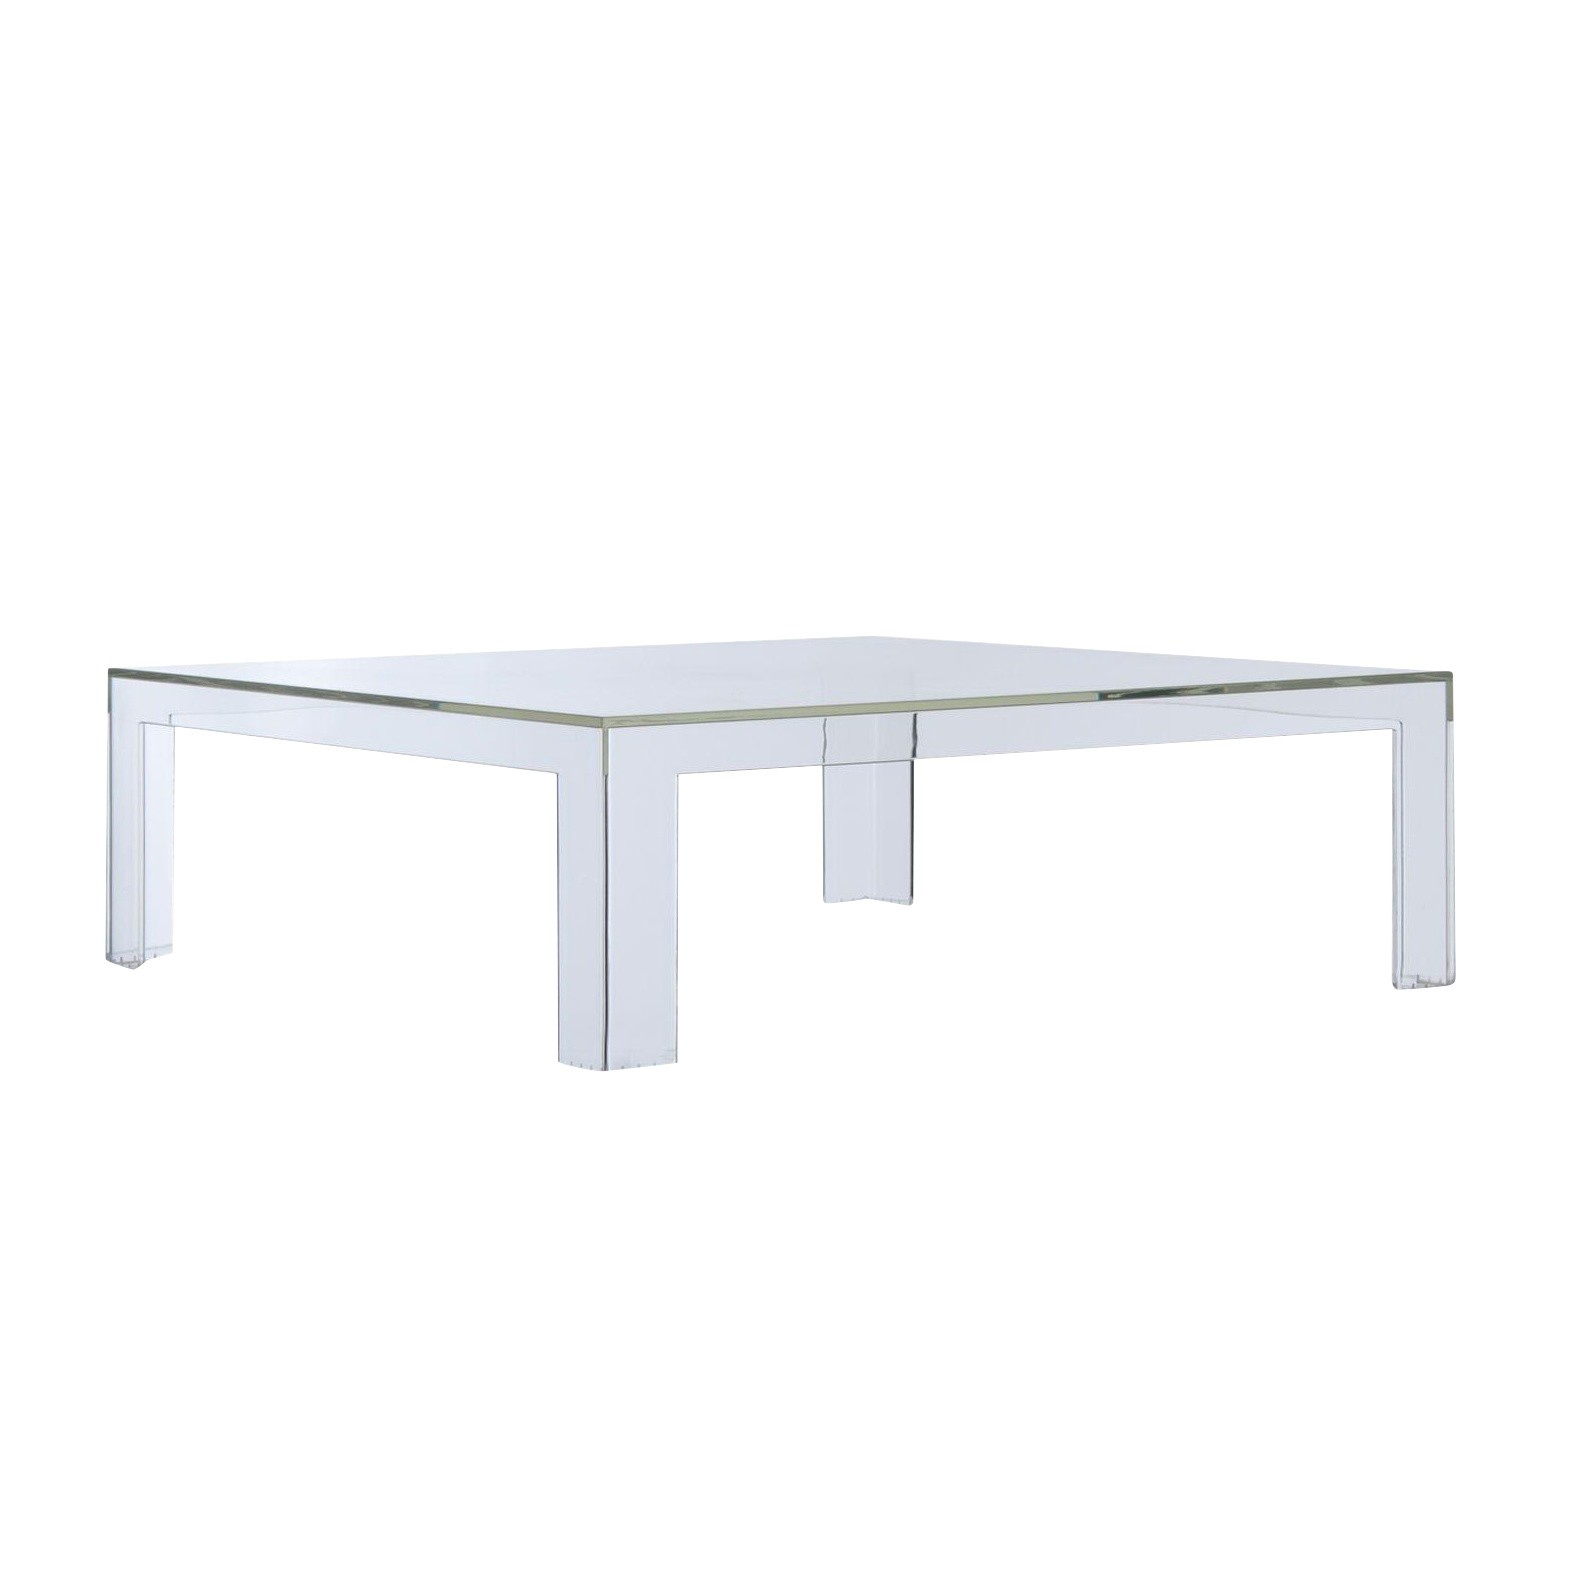 Kartell Coffee Table Hipenmoeder Nl